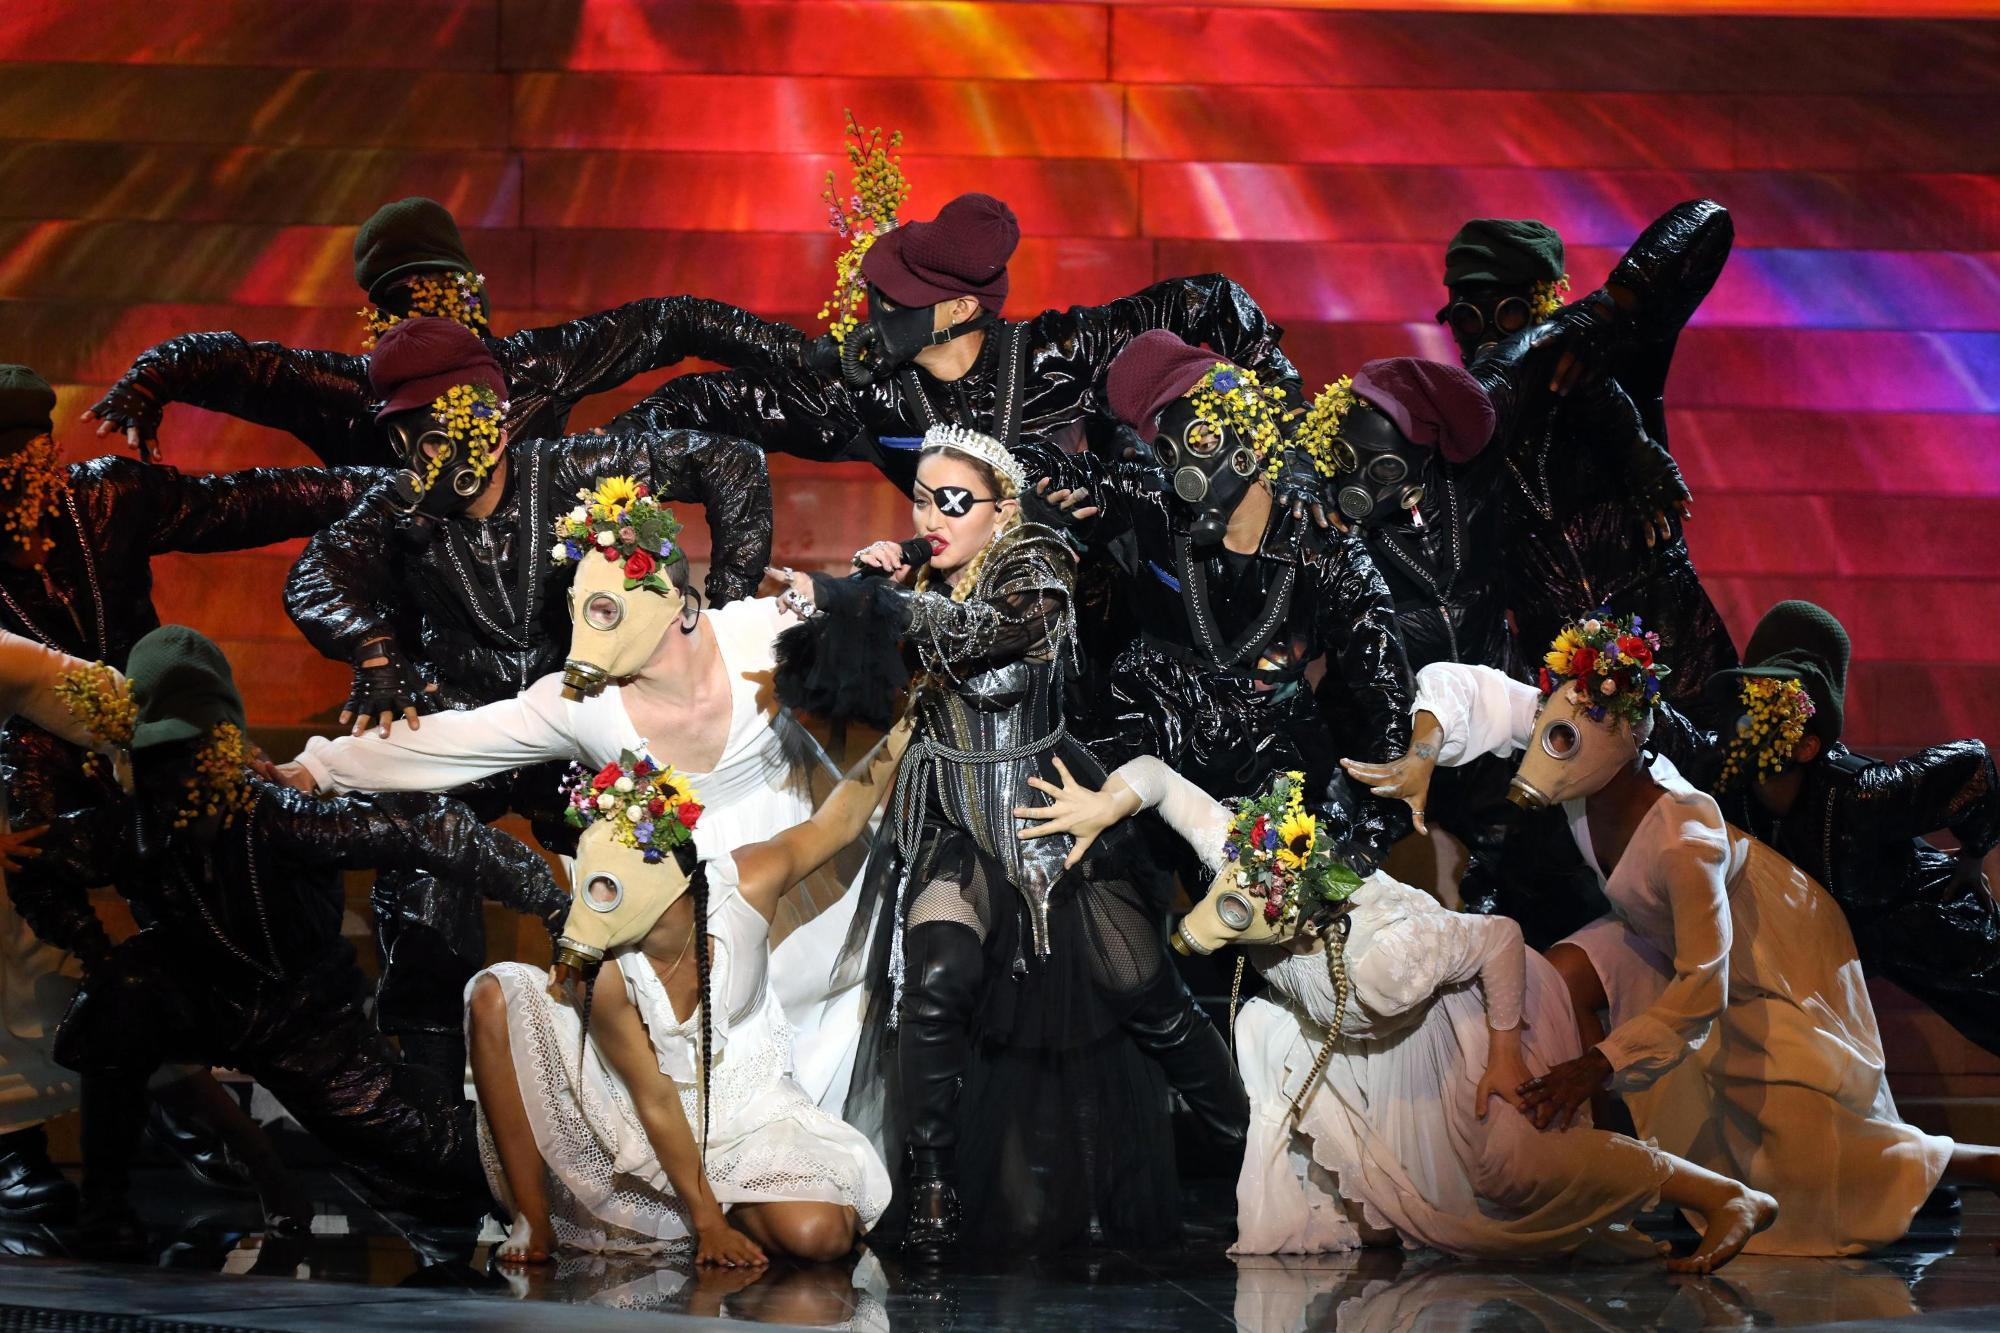 Madonna sul palco dell Eurovision Song Contest: guarda le foto